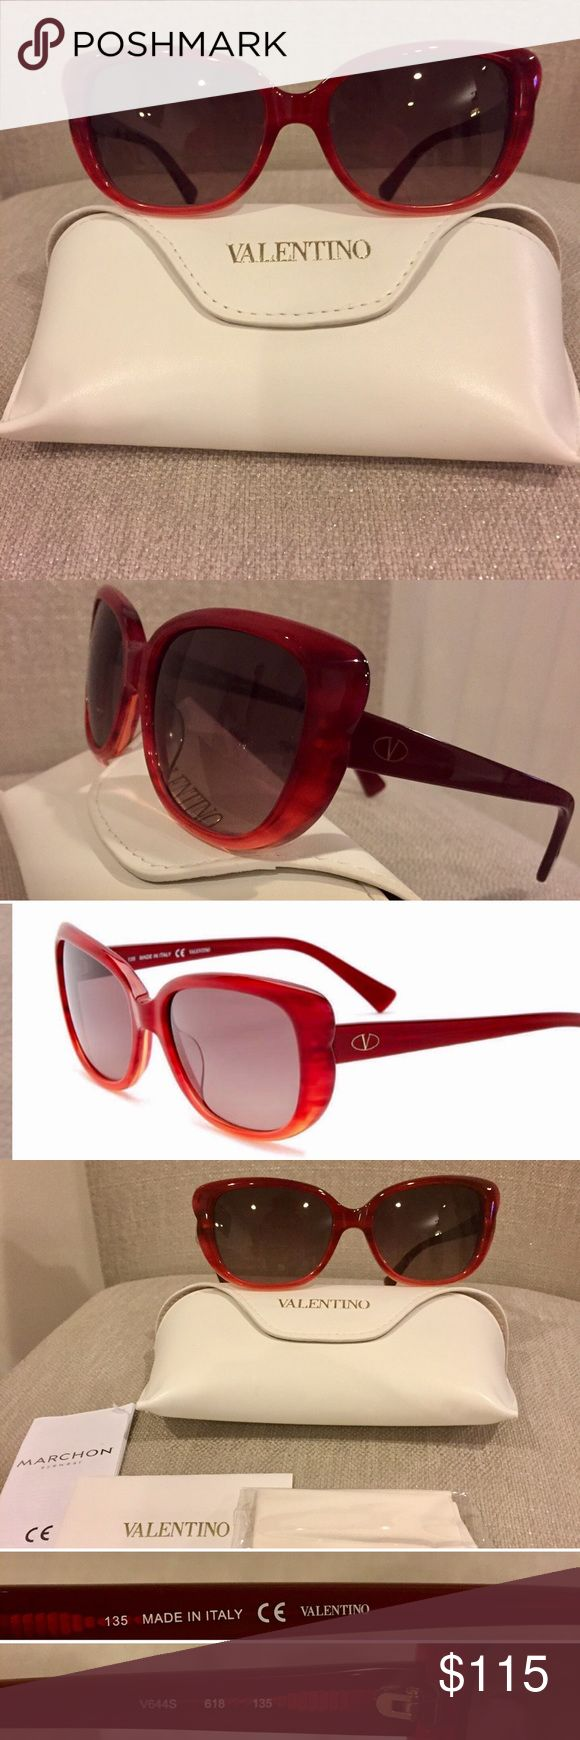 Valentino Women's Cat Eye Sunglasses - Gender: Women's - Style: Cat eye - Measurement: 54-17-135mm (eye-bridge-temple) - Frame color: Demi Red/orange - Lens color: Smoke - Frame material: Acetate - Lens type: Plastic - 100% UV protection - Case , Authenticity card and cleaning cloth included - Made in Italy Valentino Accessories Sunglasses